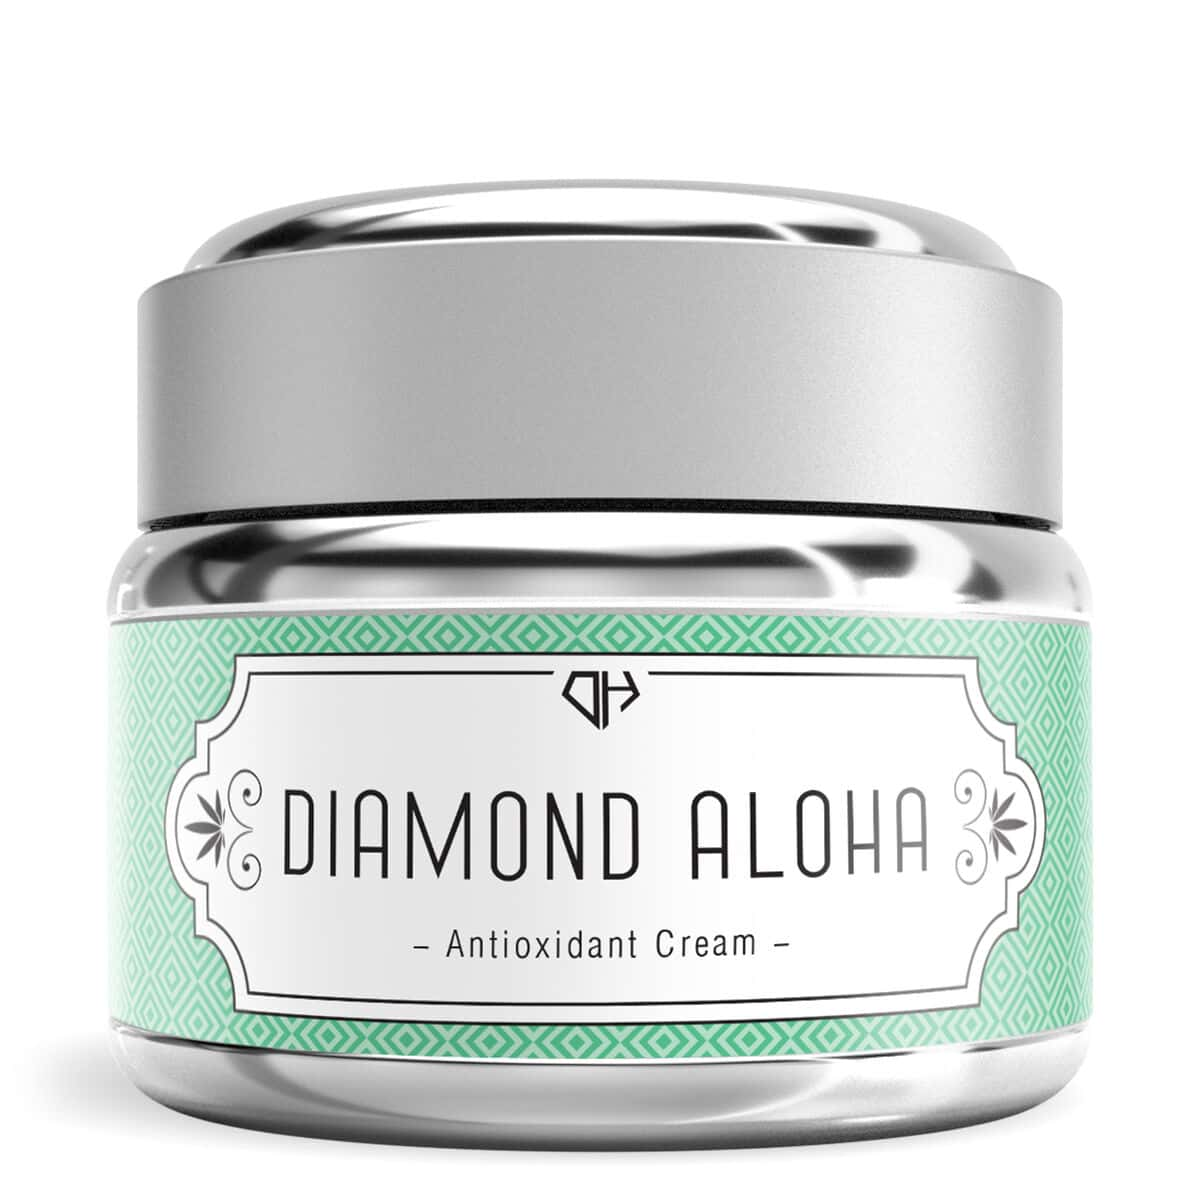 Diamond Hemp, Hemp Antioxidant Body Cream, 1oz